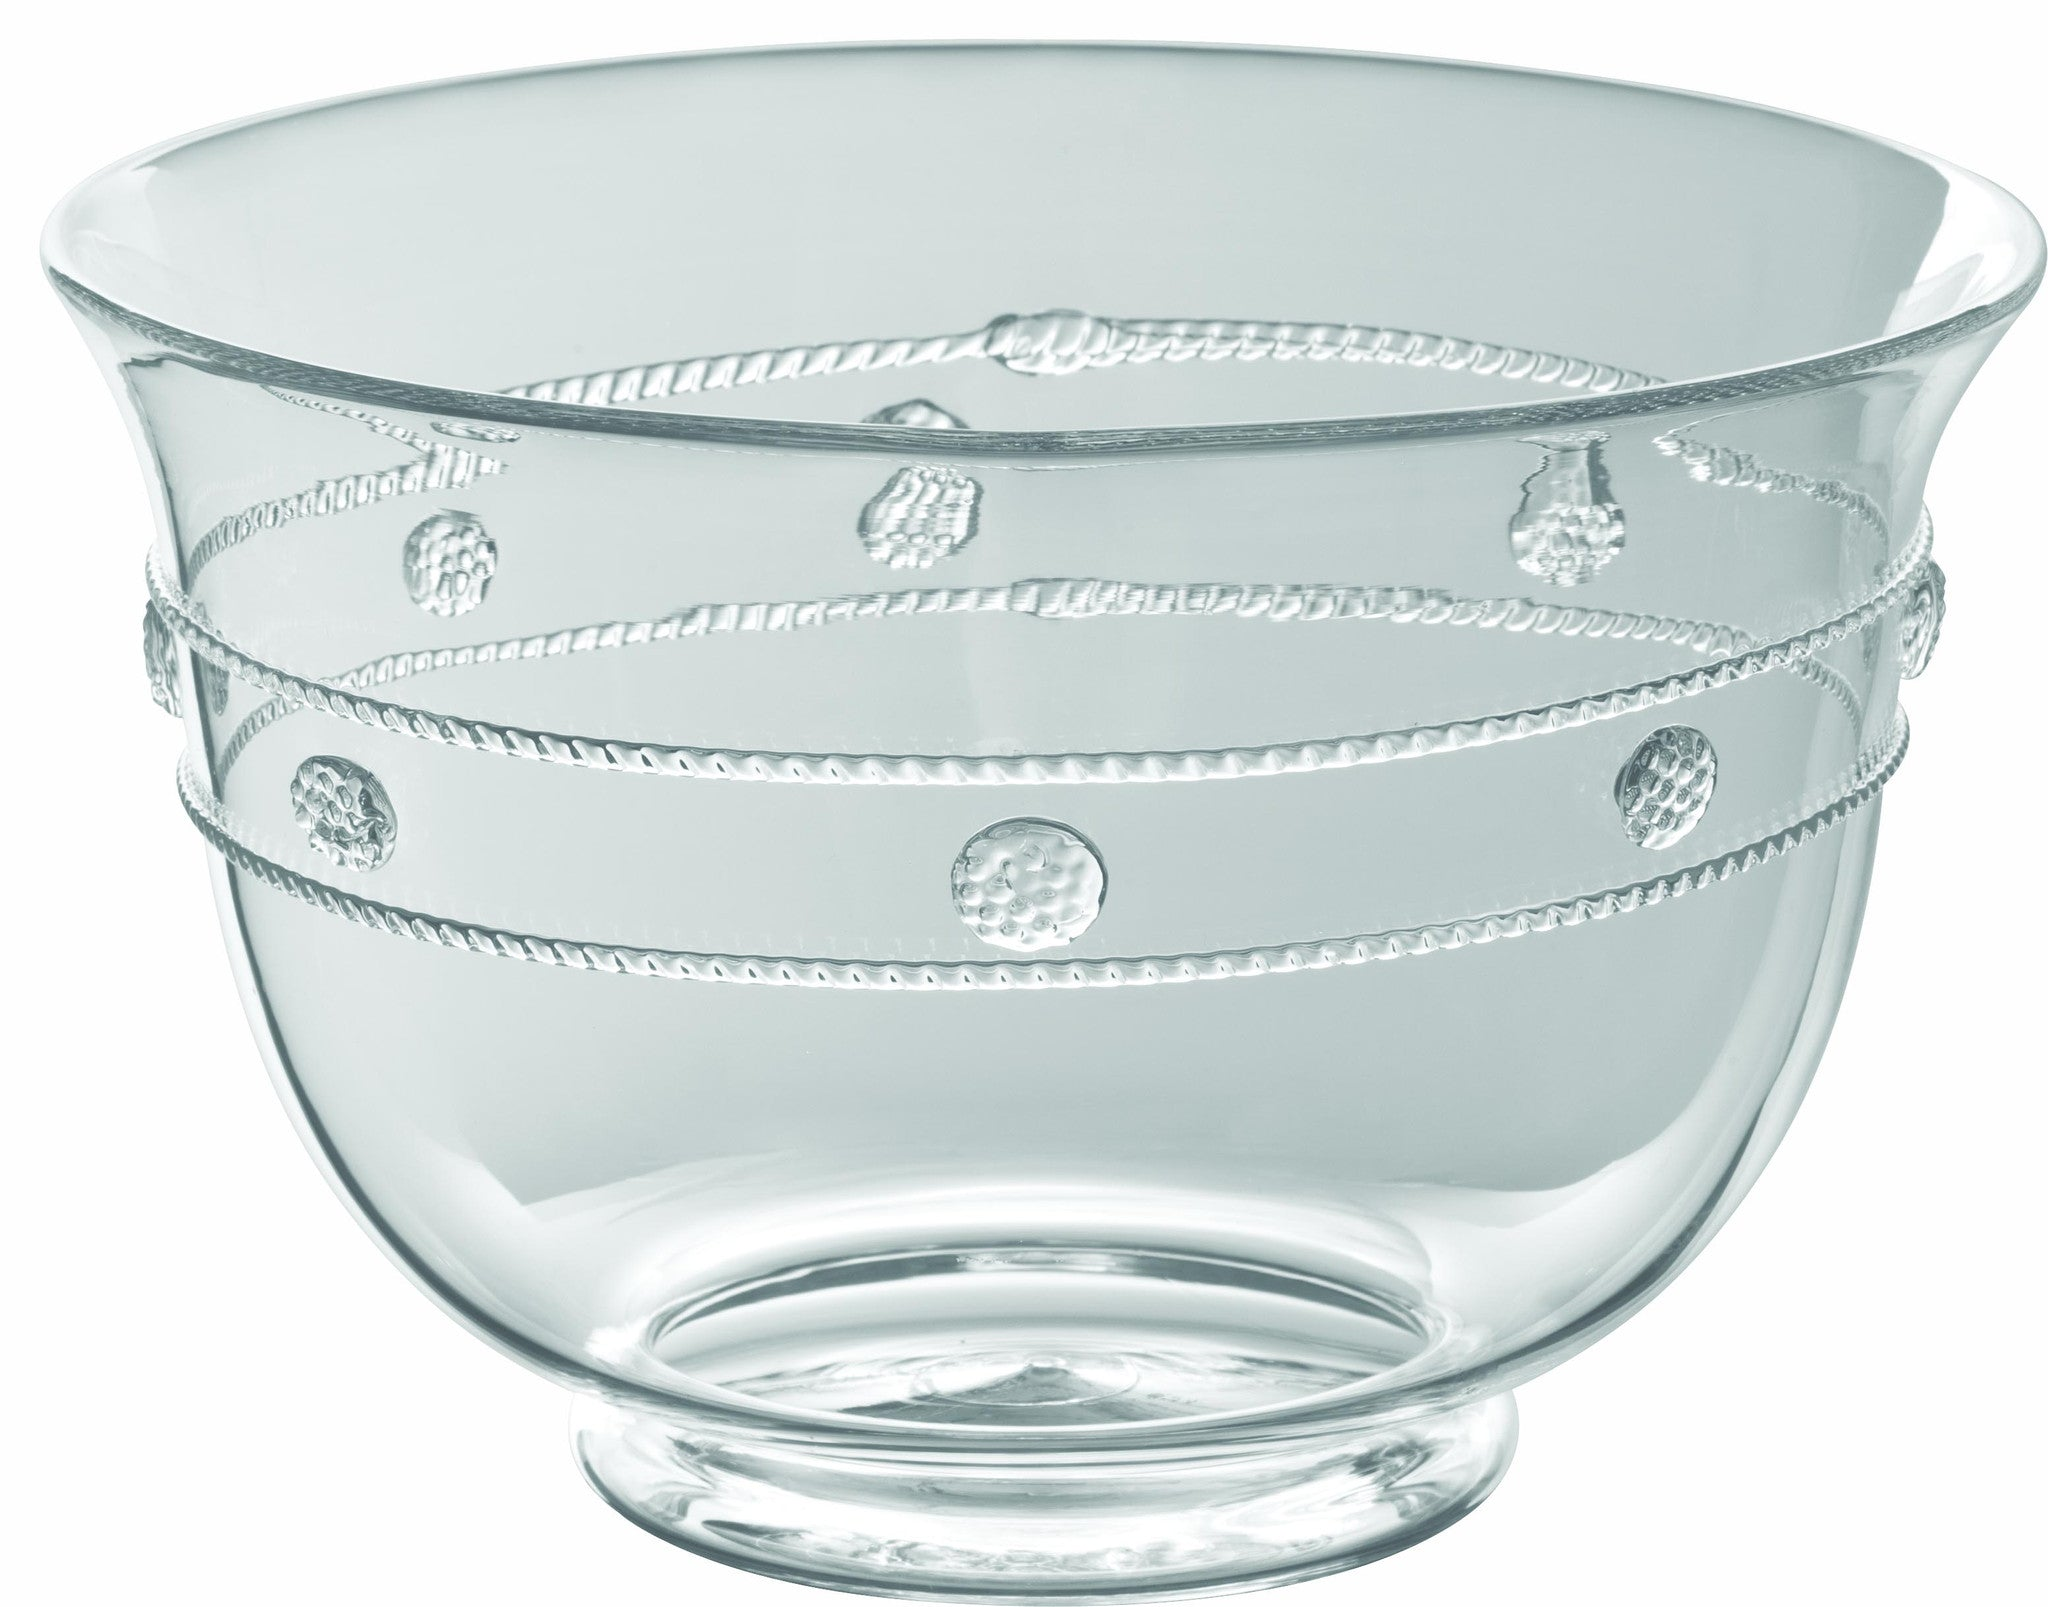 Juliska Large Isabella Bowl